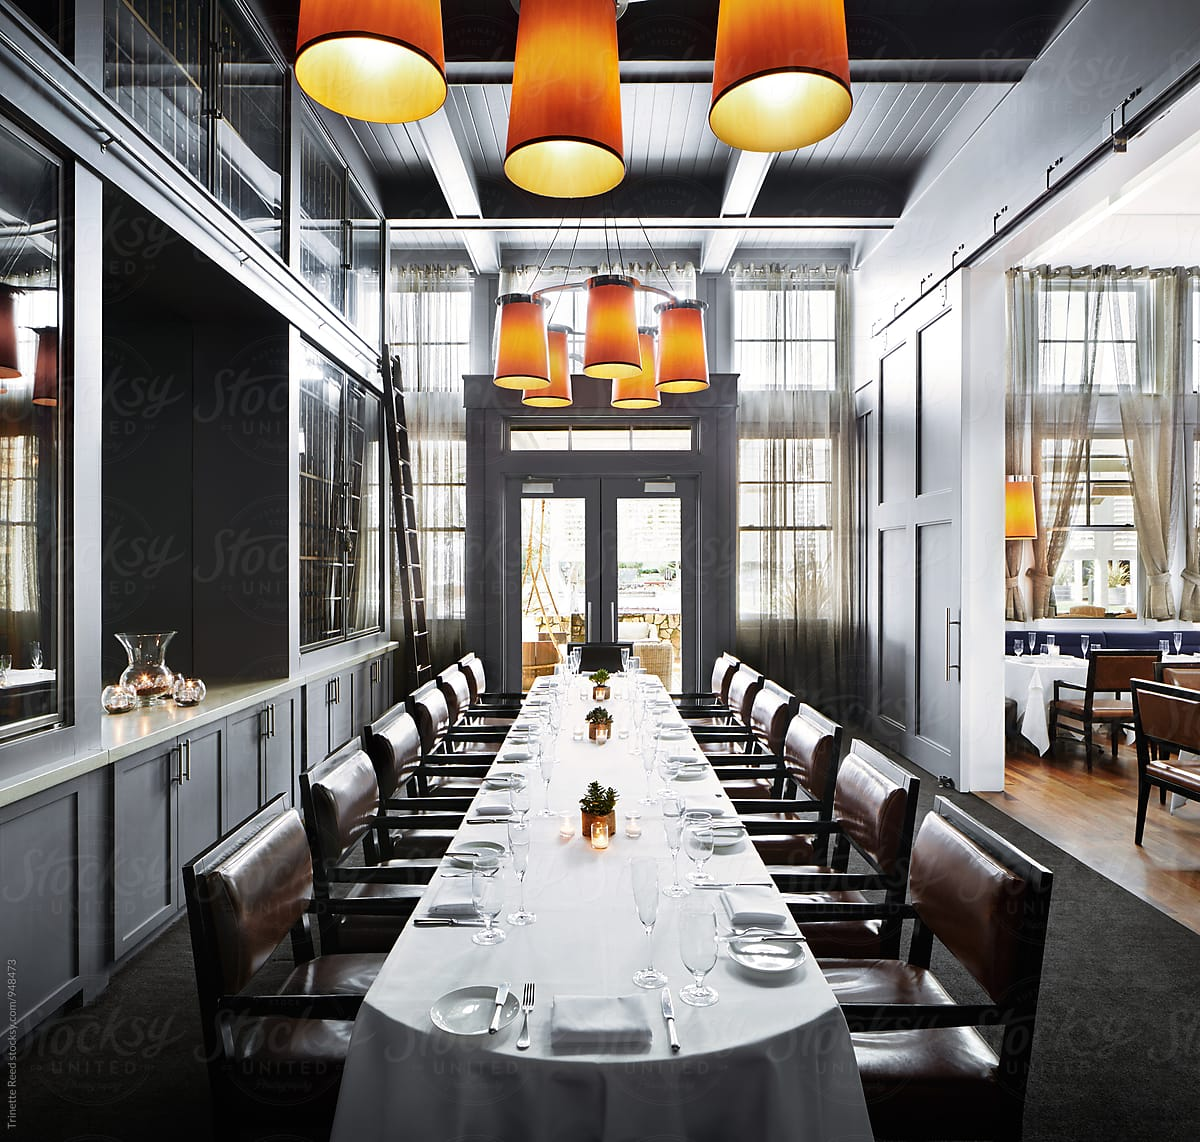 Private Dining Room In Fancy Restaurant, Fancy Dining Room